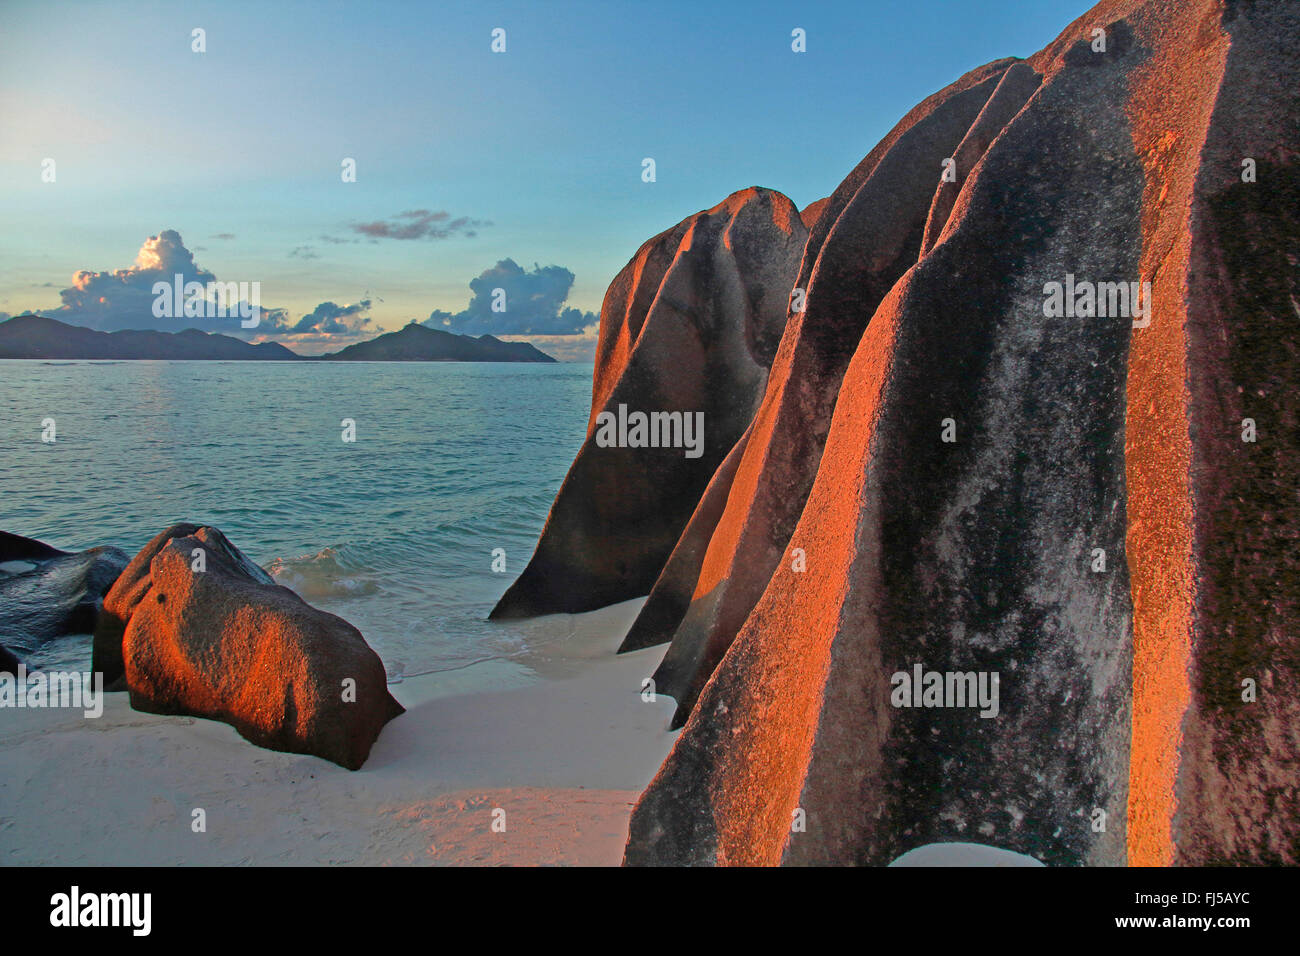 beach with rutted granite rocks and view onto the island Praslin in the background, Seychelles, La Digue, Anse Source - Stock Image